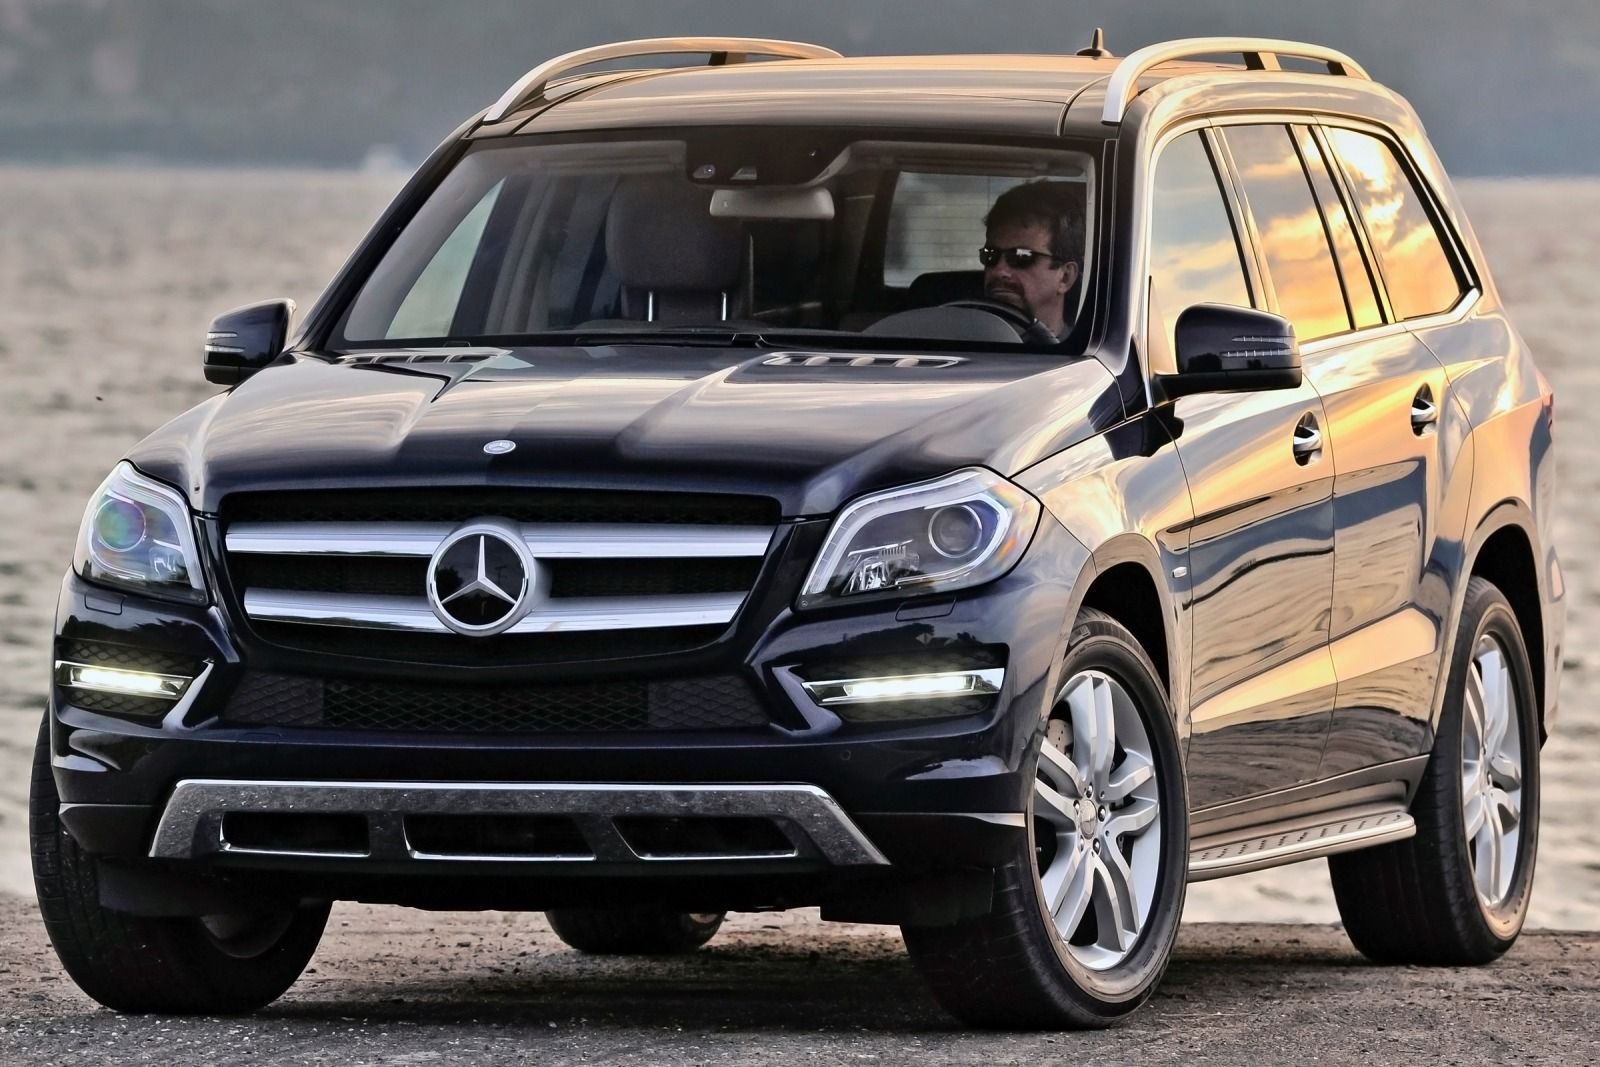 mercedes suv 2015 free large images 2014 mercedes benz - Mercedes Benz Suv 2014 Price